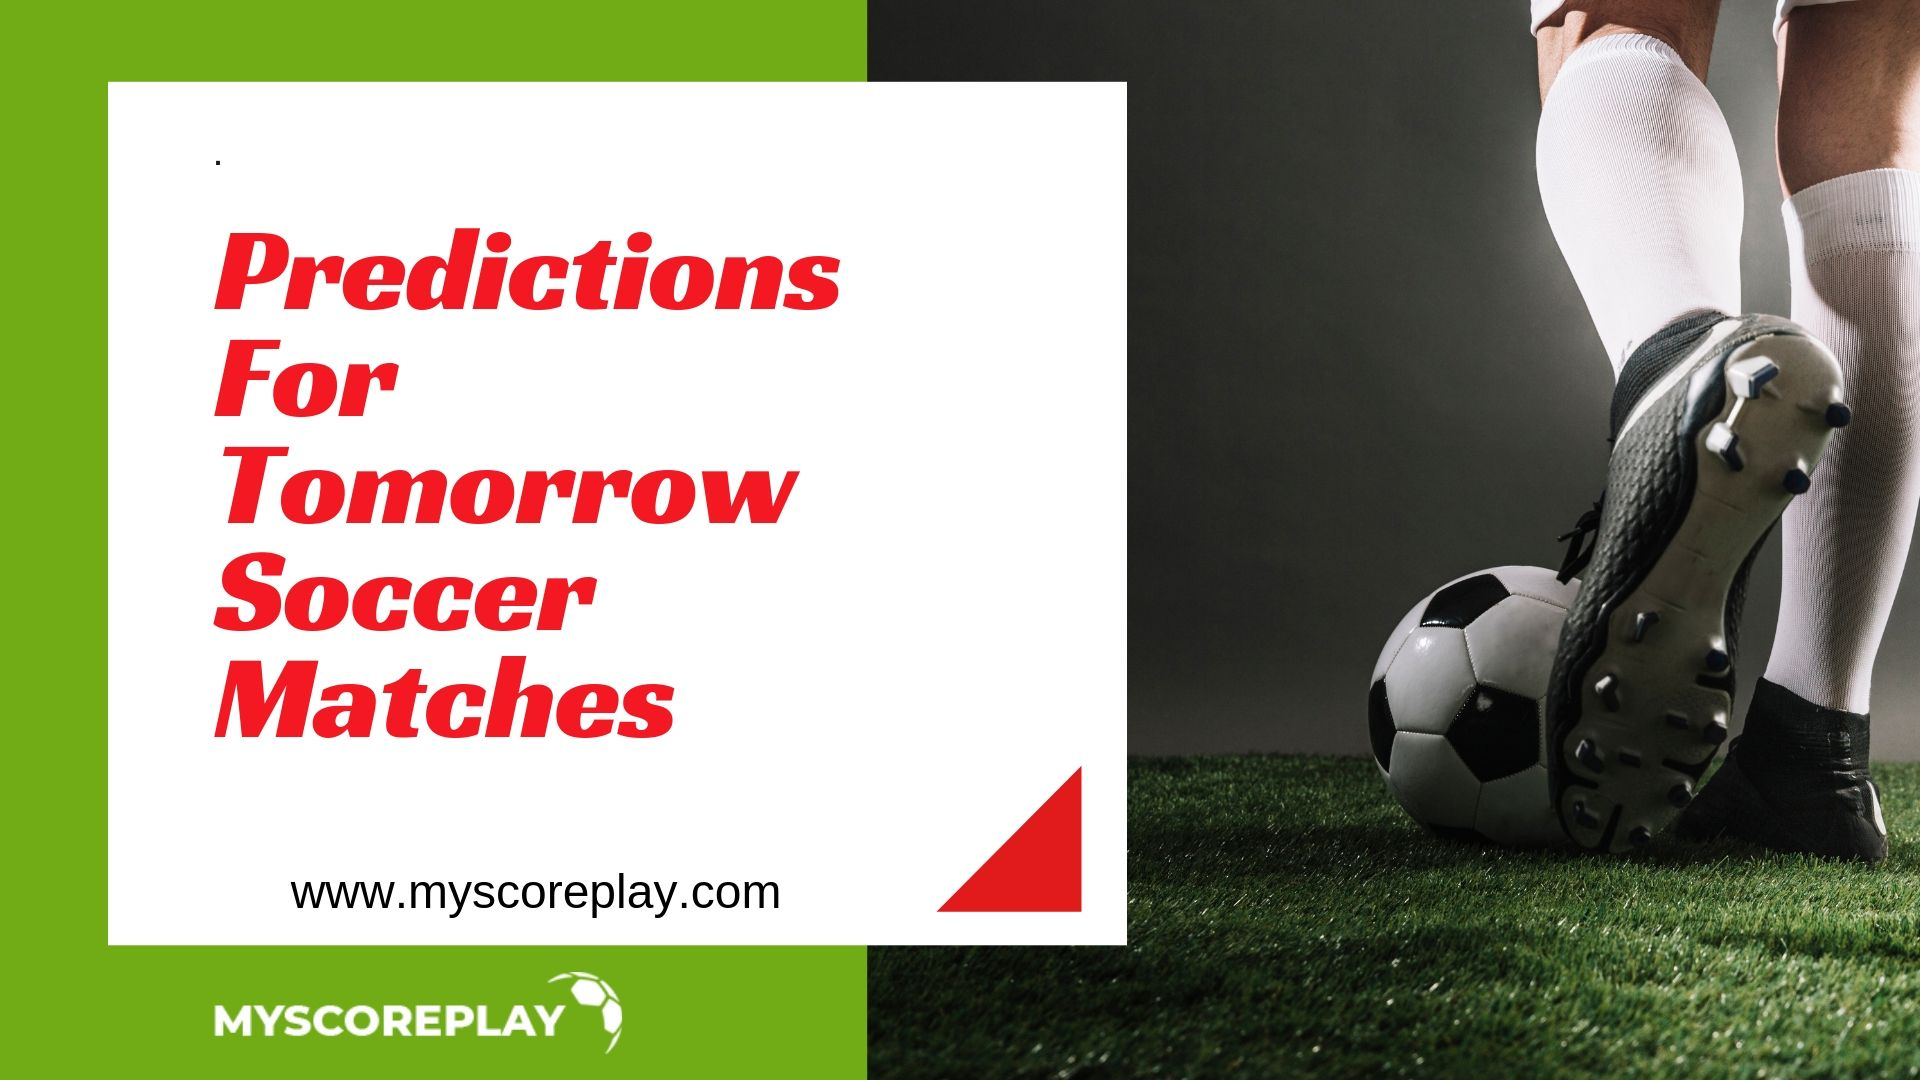 Best football prediction site in the world myscoreplay